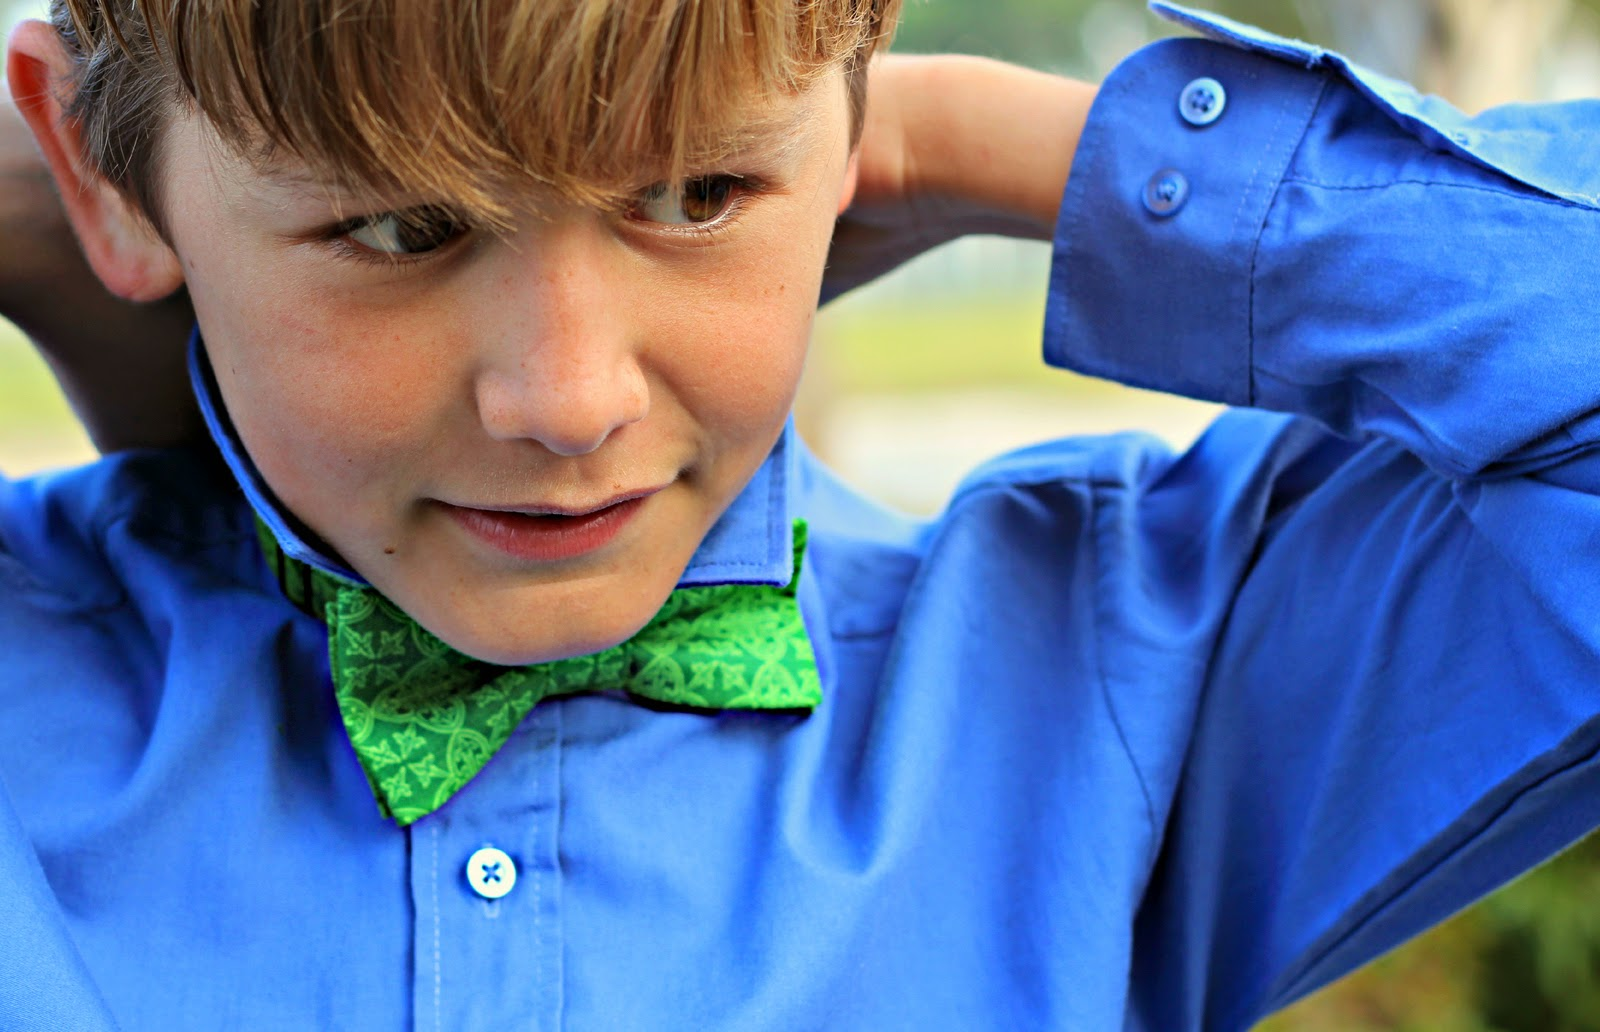 Green Gaelic Print Bow Tie for St. Patrick's Day, festive tie for men and boys